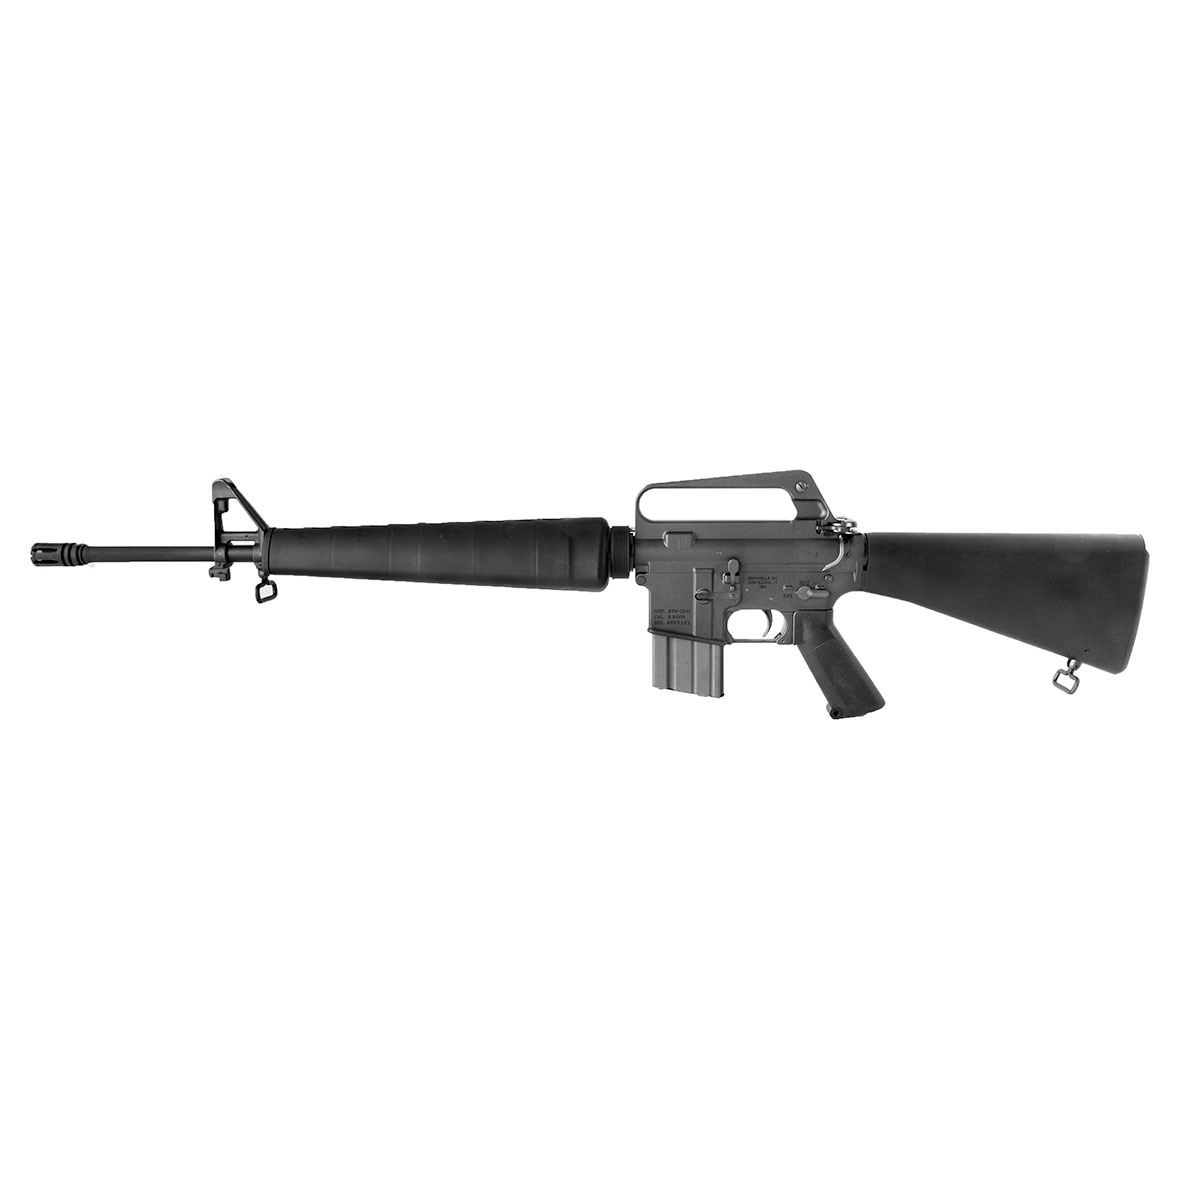 Brownells Brn 16a1 174 Rifle 5 56mm 20in Black Brownells